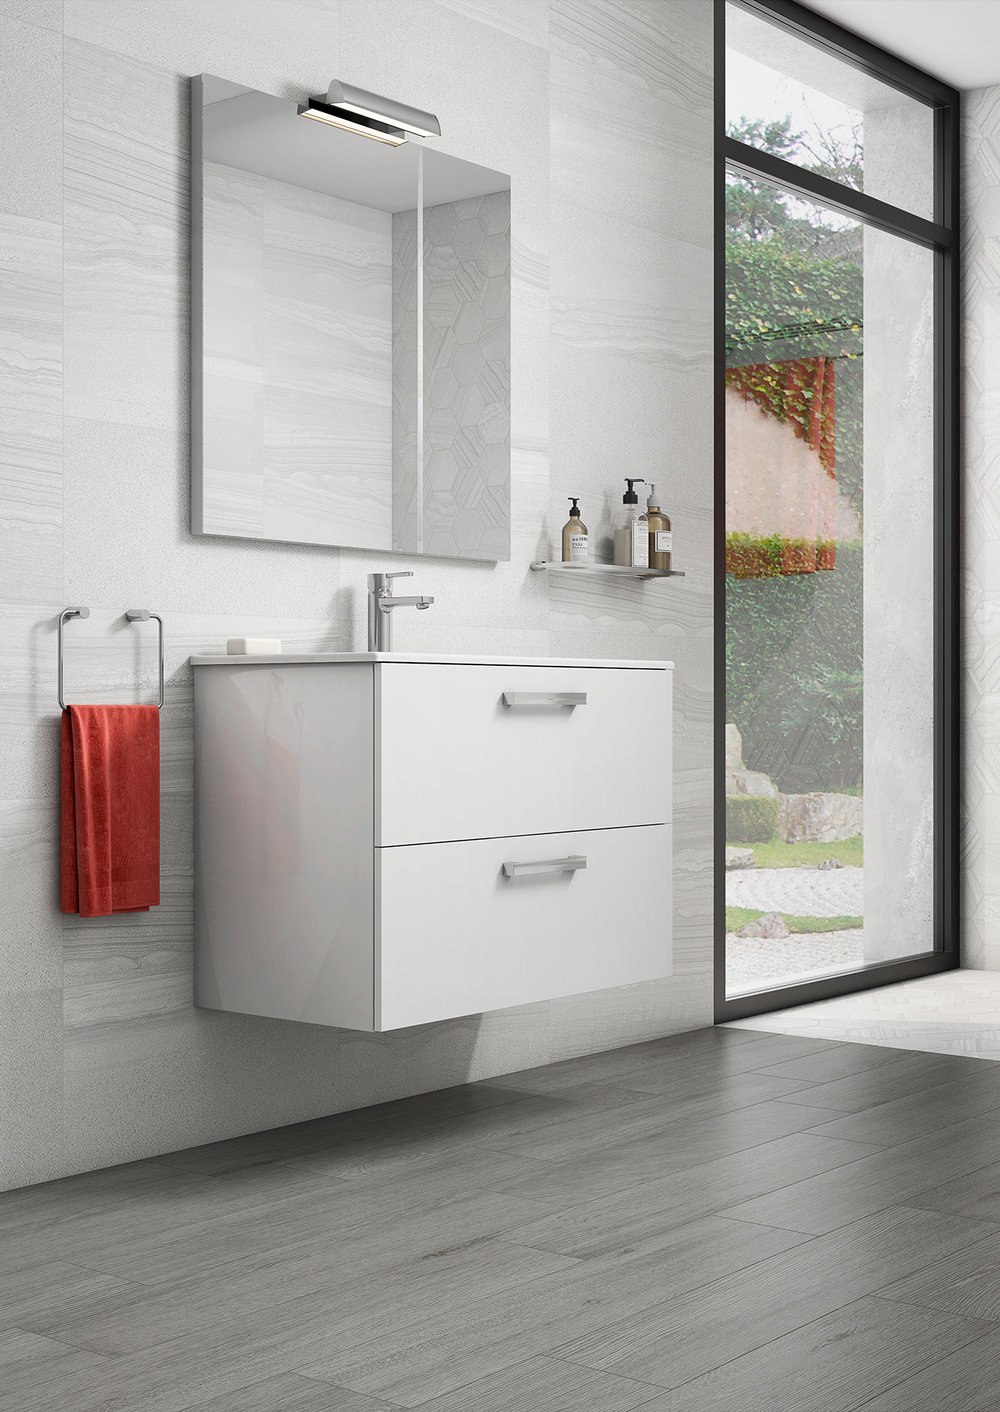 ASTER WALL-MOUNT VANITY WITH DRAWERS GLOSS WHITE - Finish: High gloss white lacqueredWall-mounted24